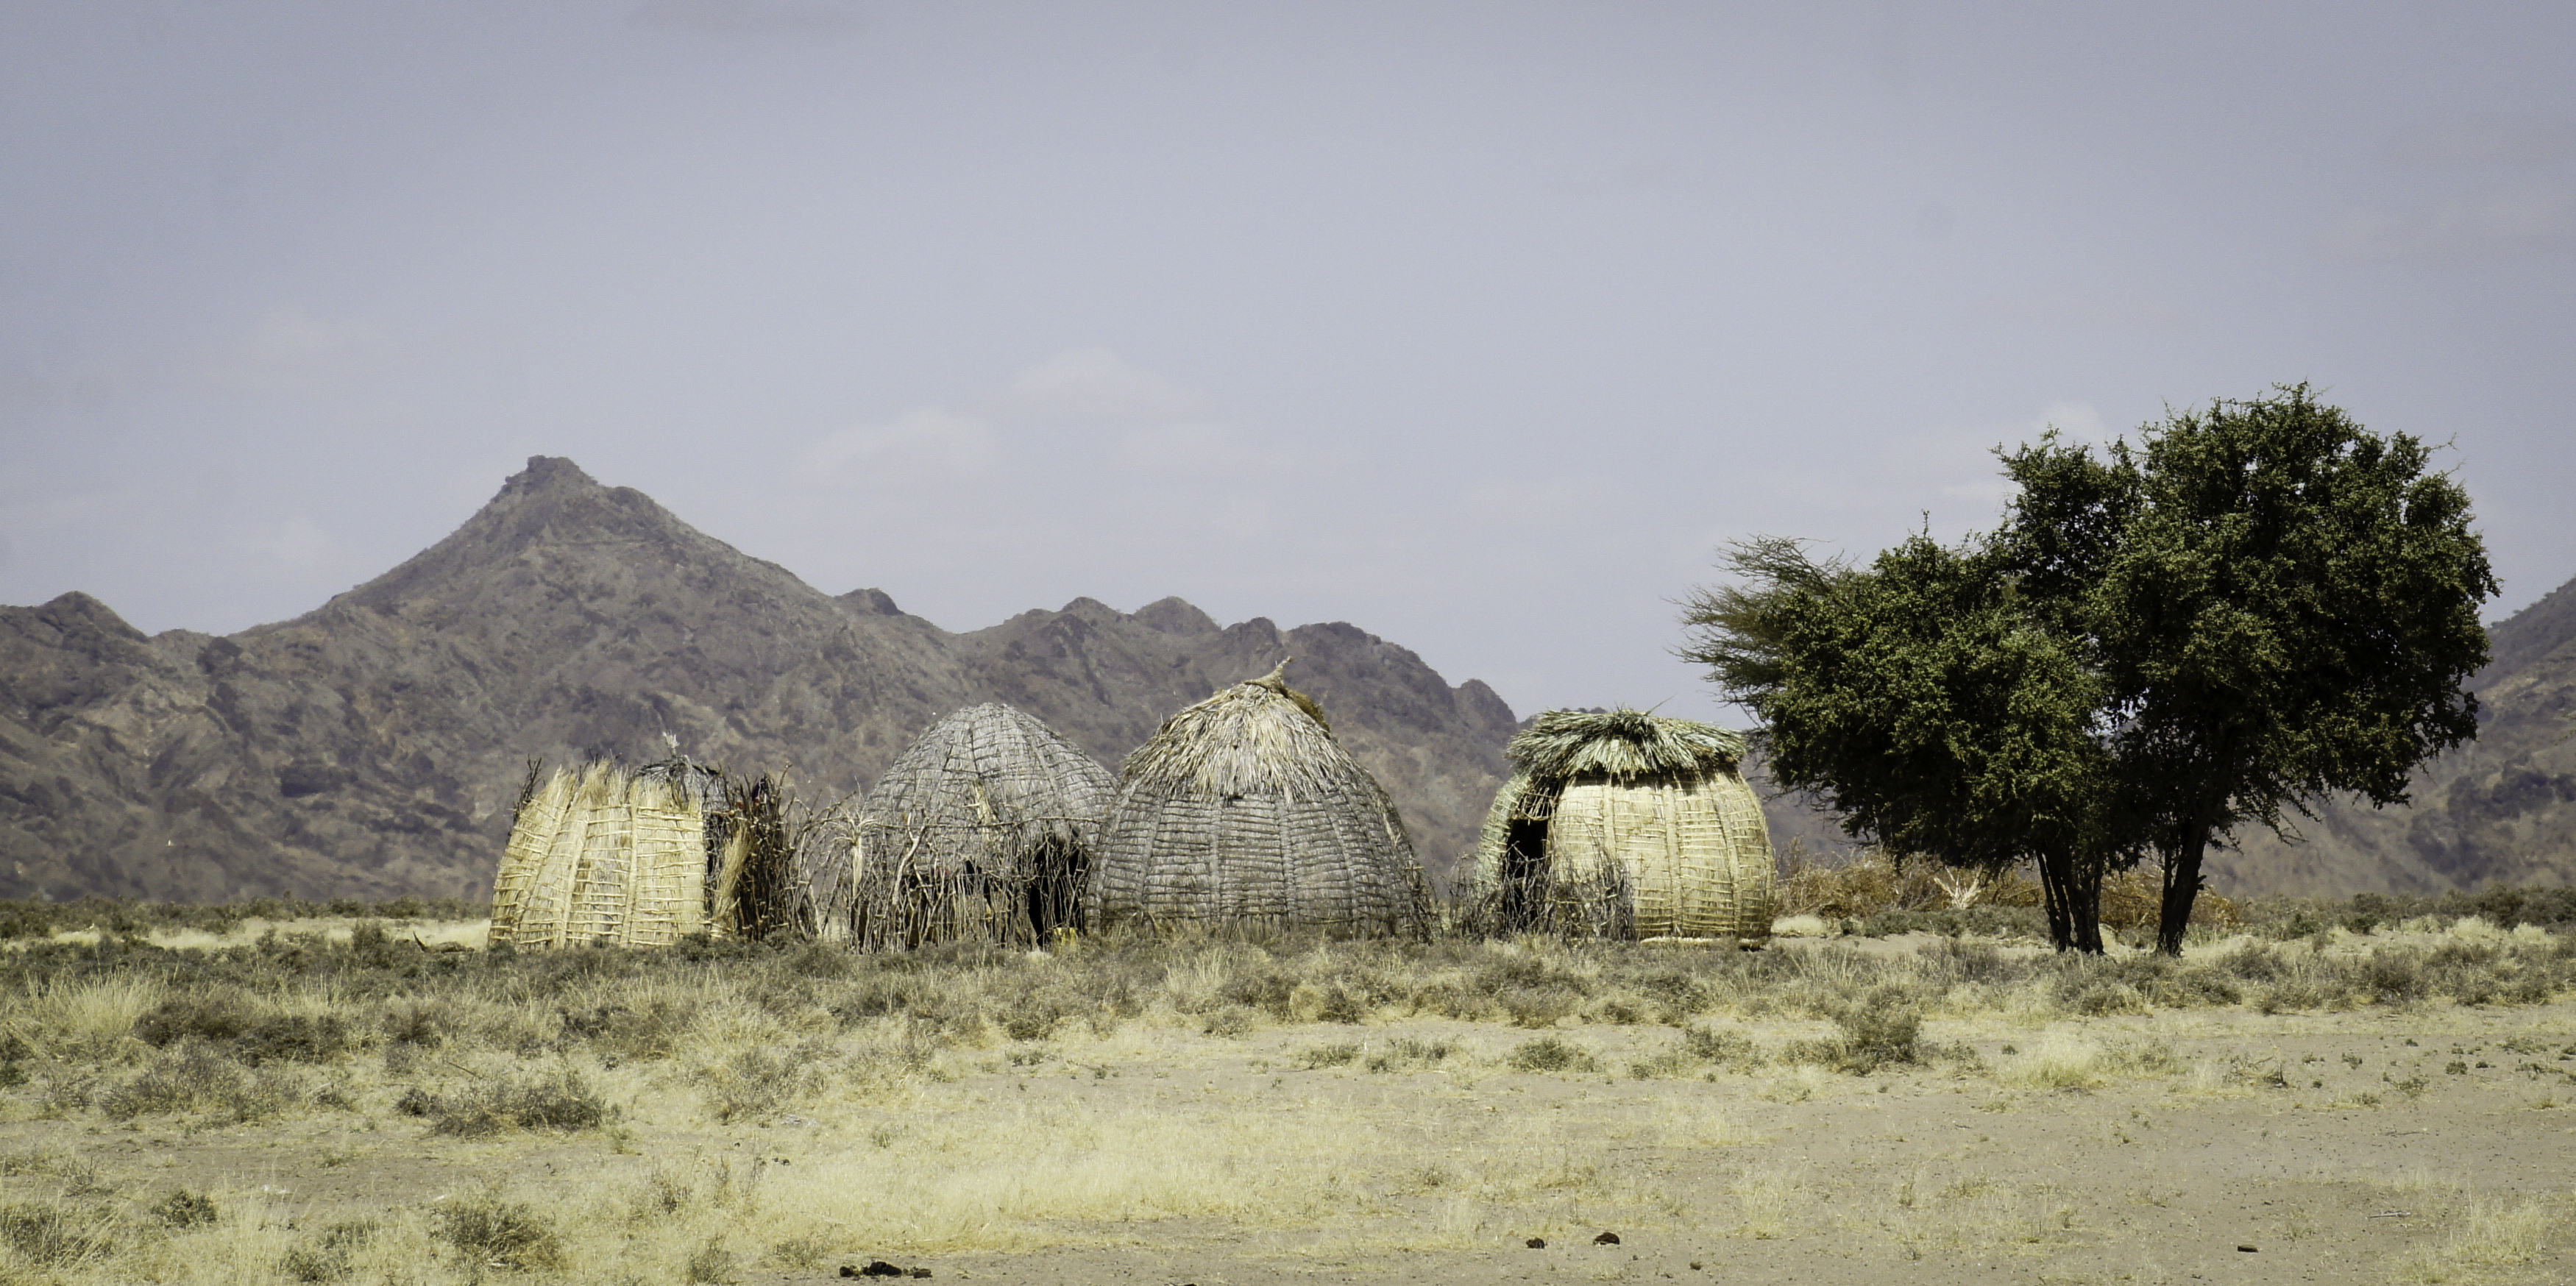 Turkana Depression, Kenya